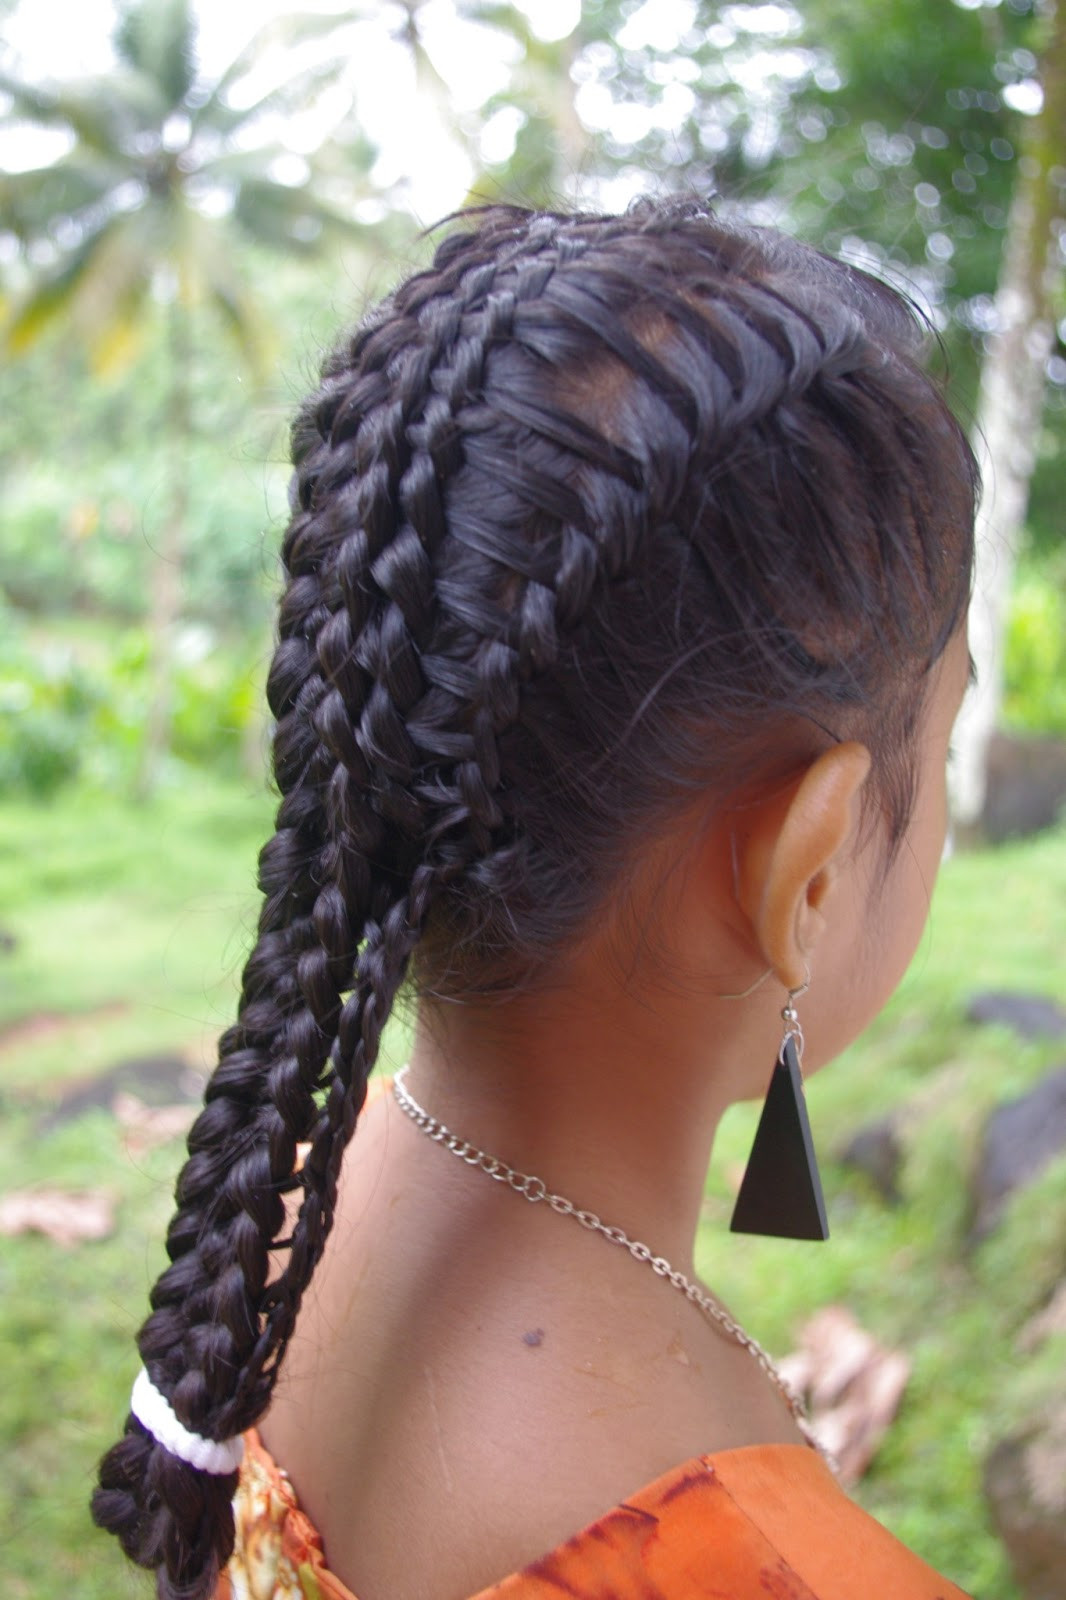 Braid Hairstyles With Weave  Braids & Hairstyles for Super Long Hair Micronesian Girl